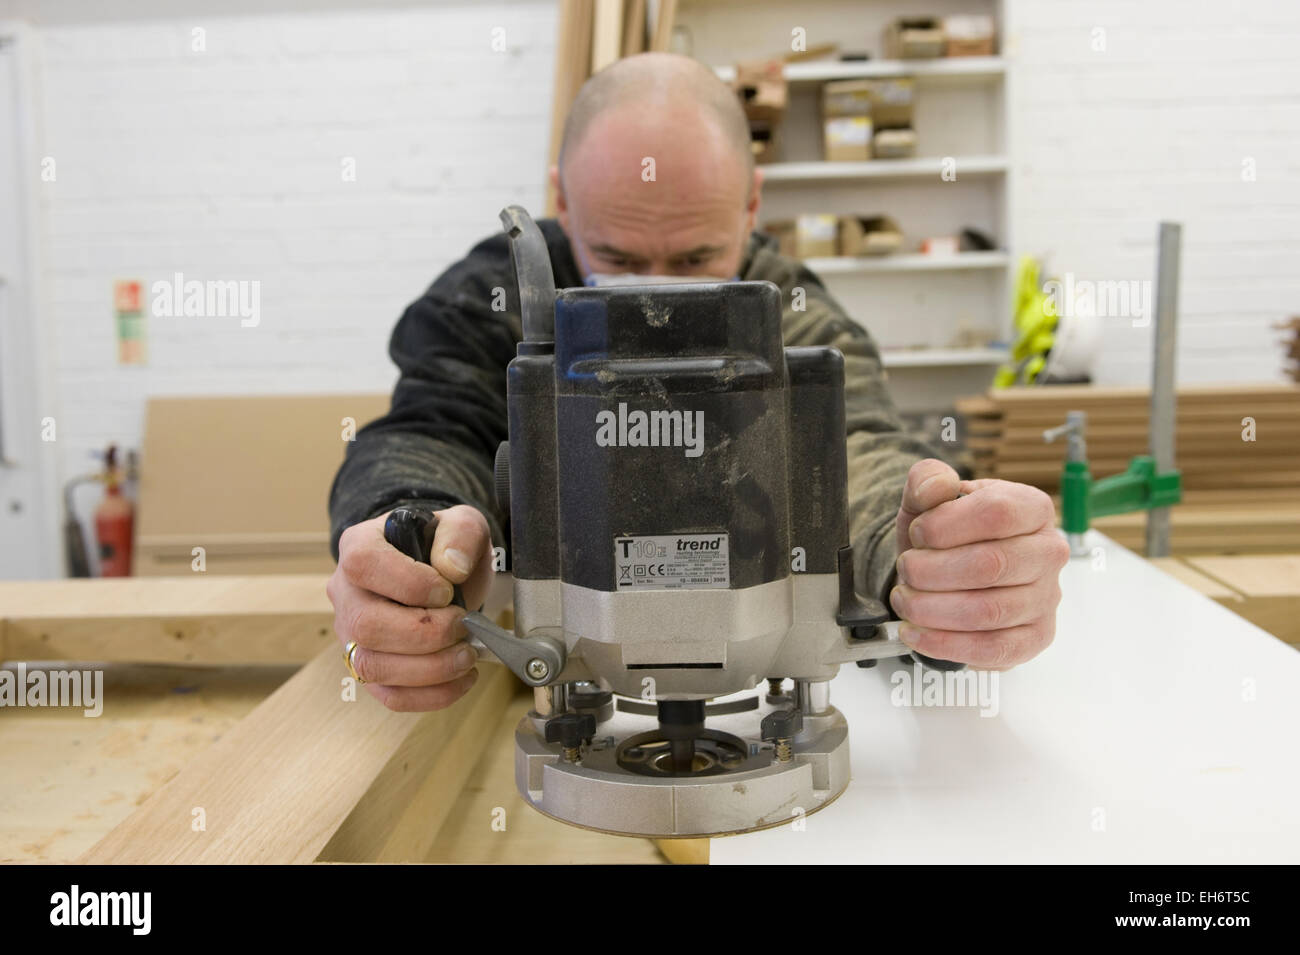 craftsmen work in a woodworking factory preparing high quality furnishing using both traditional and modern, industrial - Stock Image